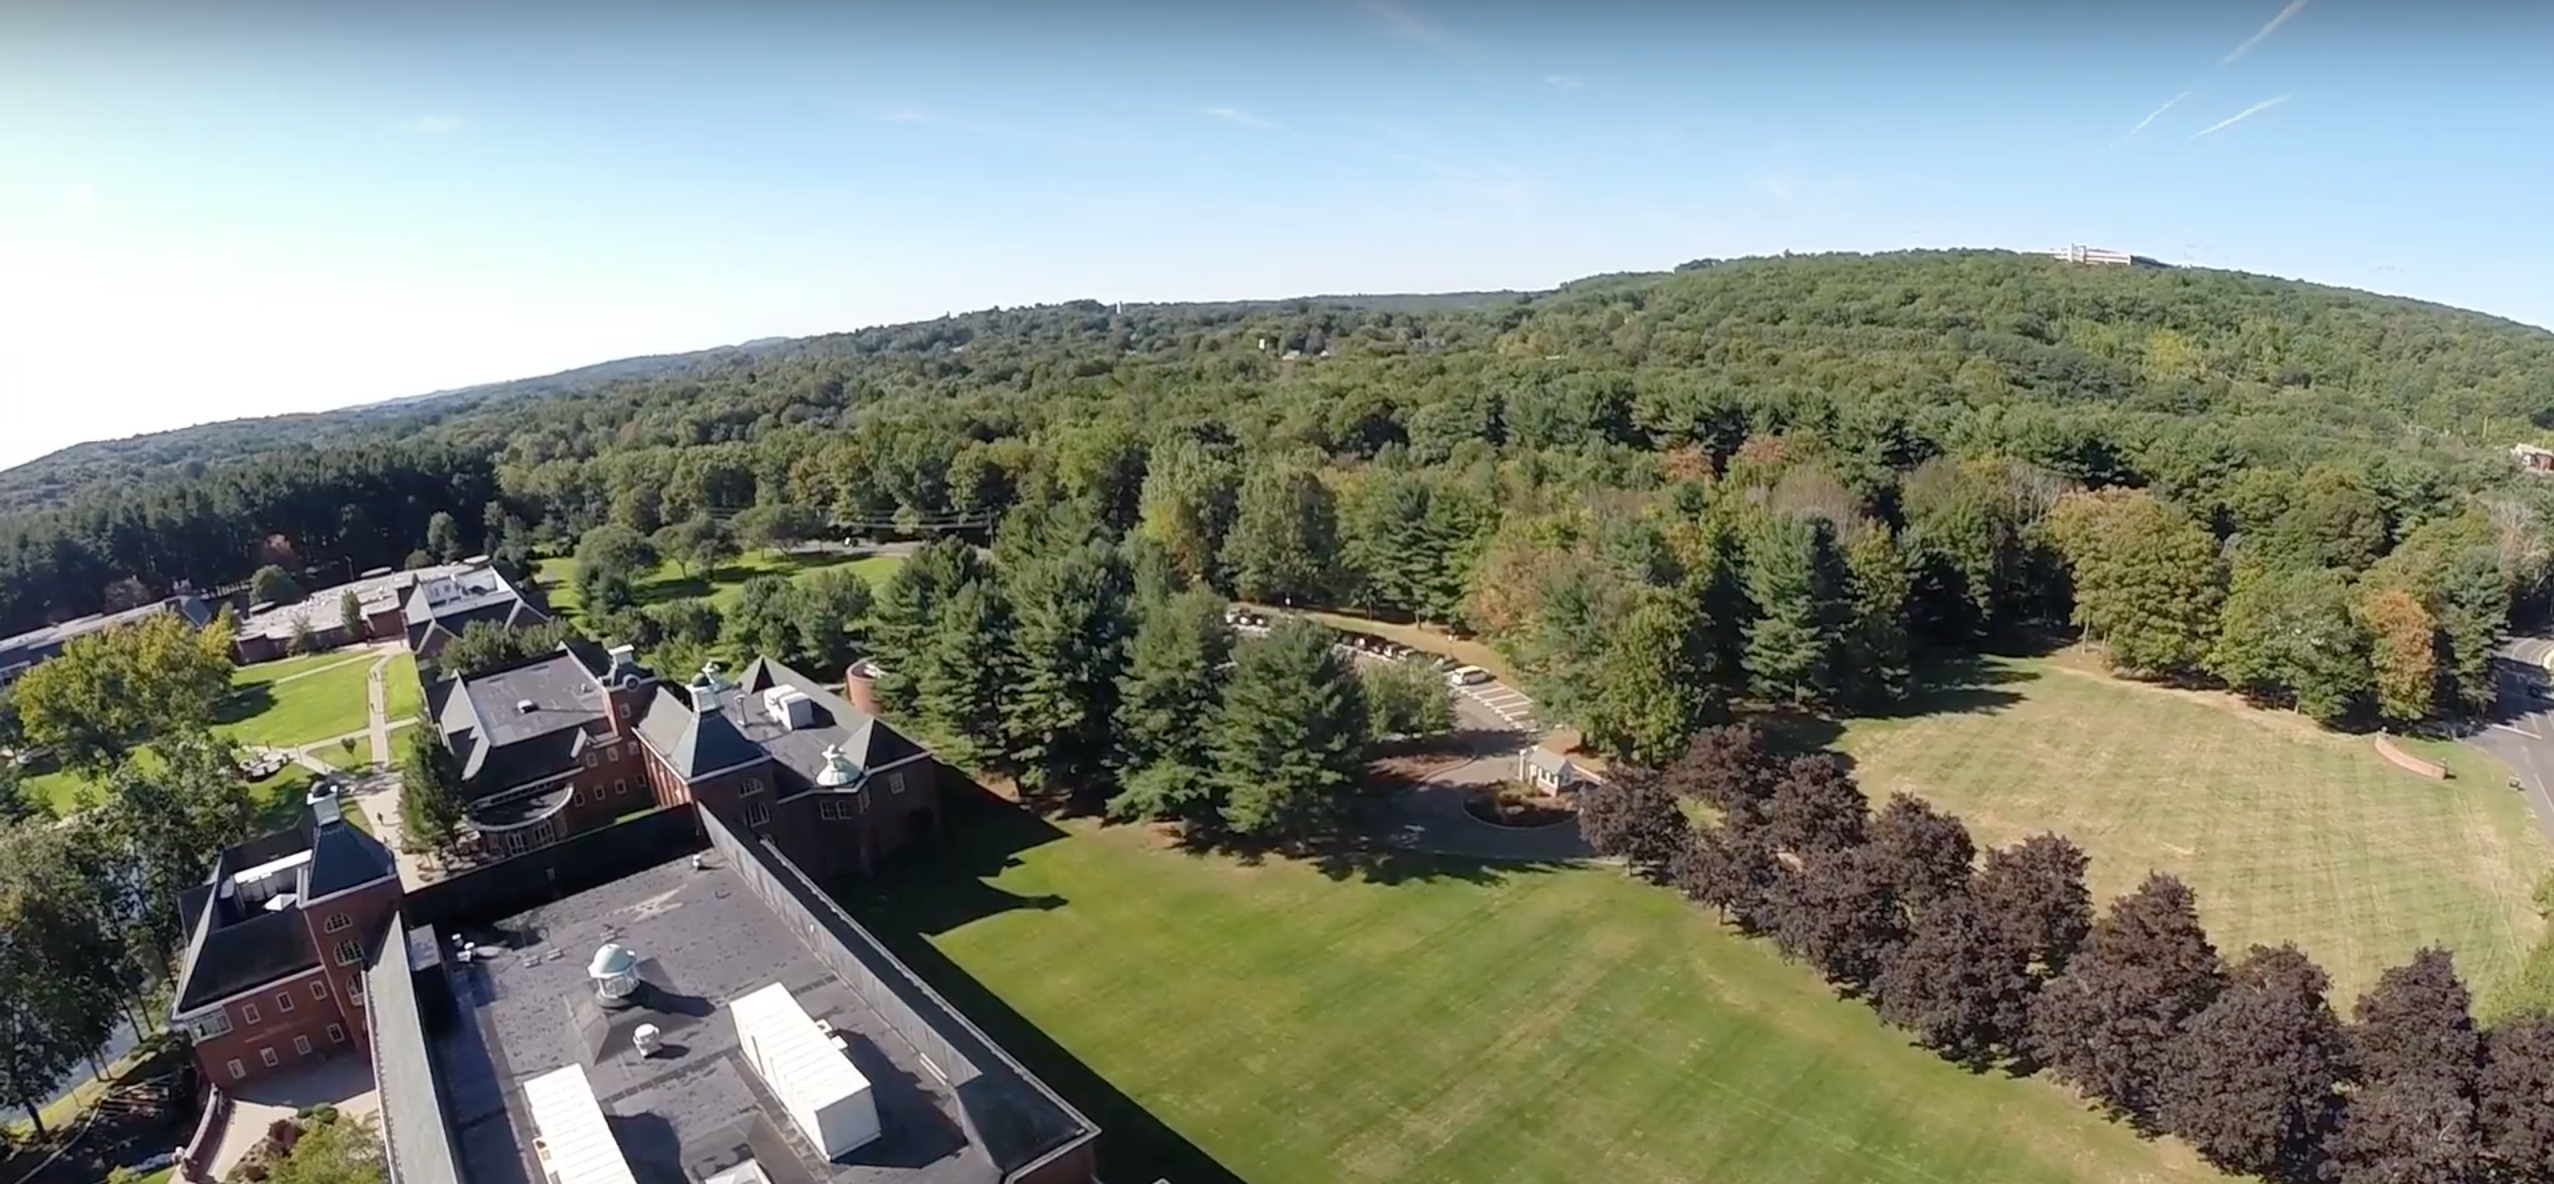 Quinnipiac Adds New Drone Policy